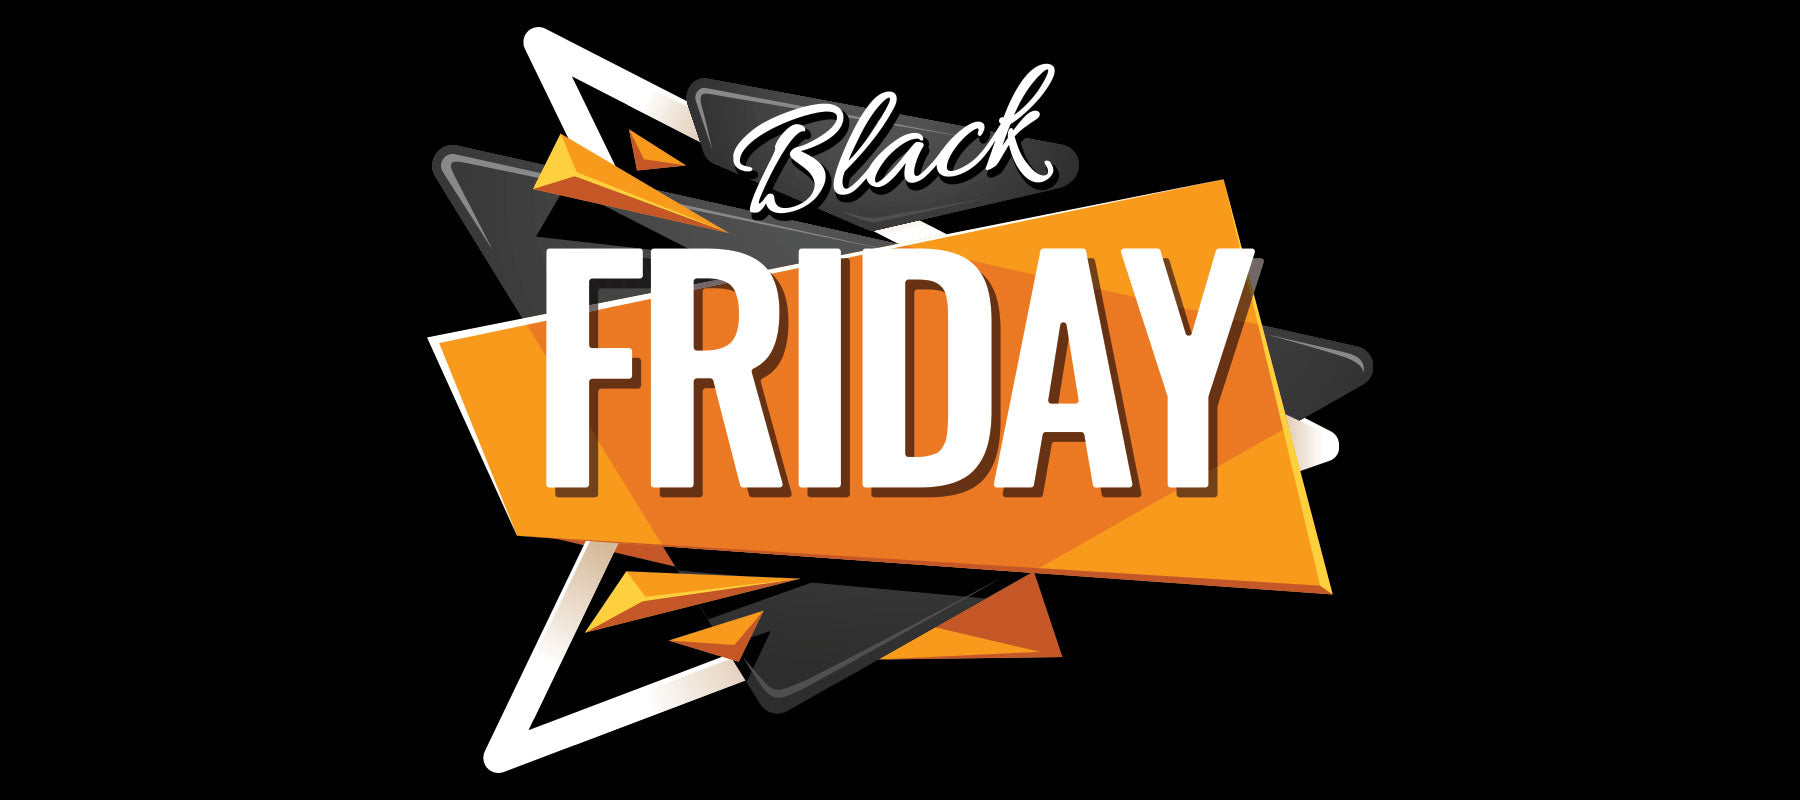 Black Friday Cyber Monday 2019 Vape Sale with Vape Bureau Australia. 15% off sitewide, plus 15% to 50% off Hardware and DIY Vape Supplies, 20% off DIY Bottles & 25% to 50% off vape juice.